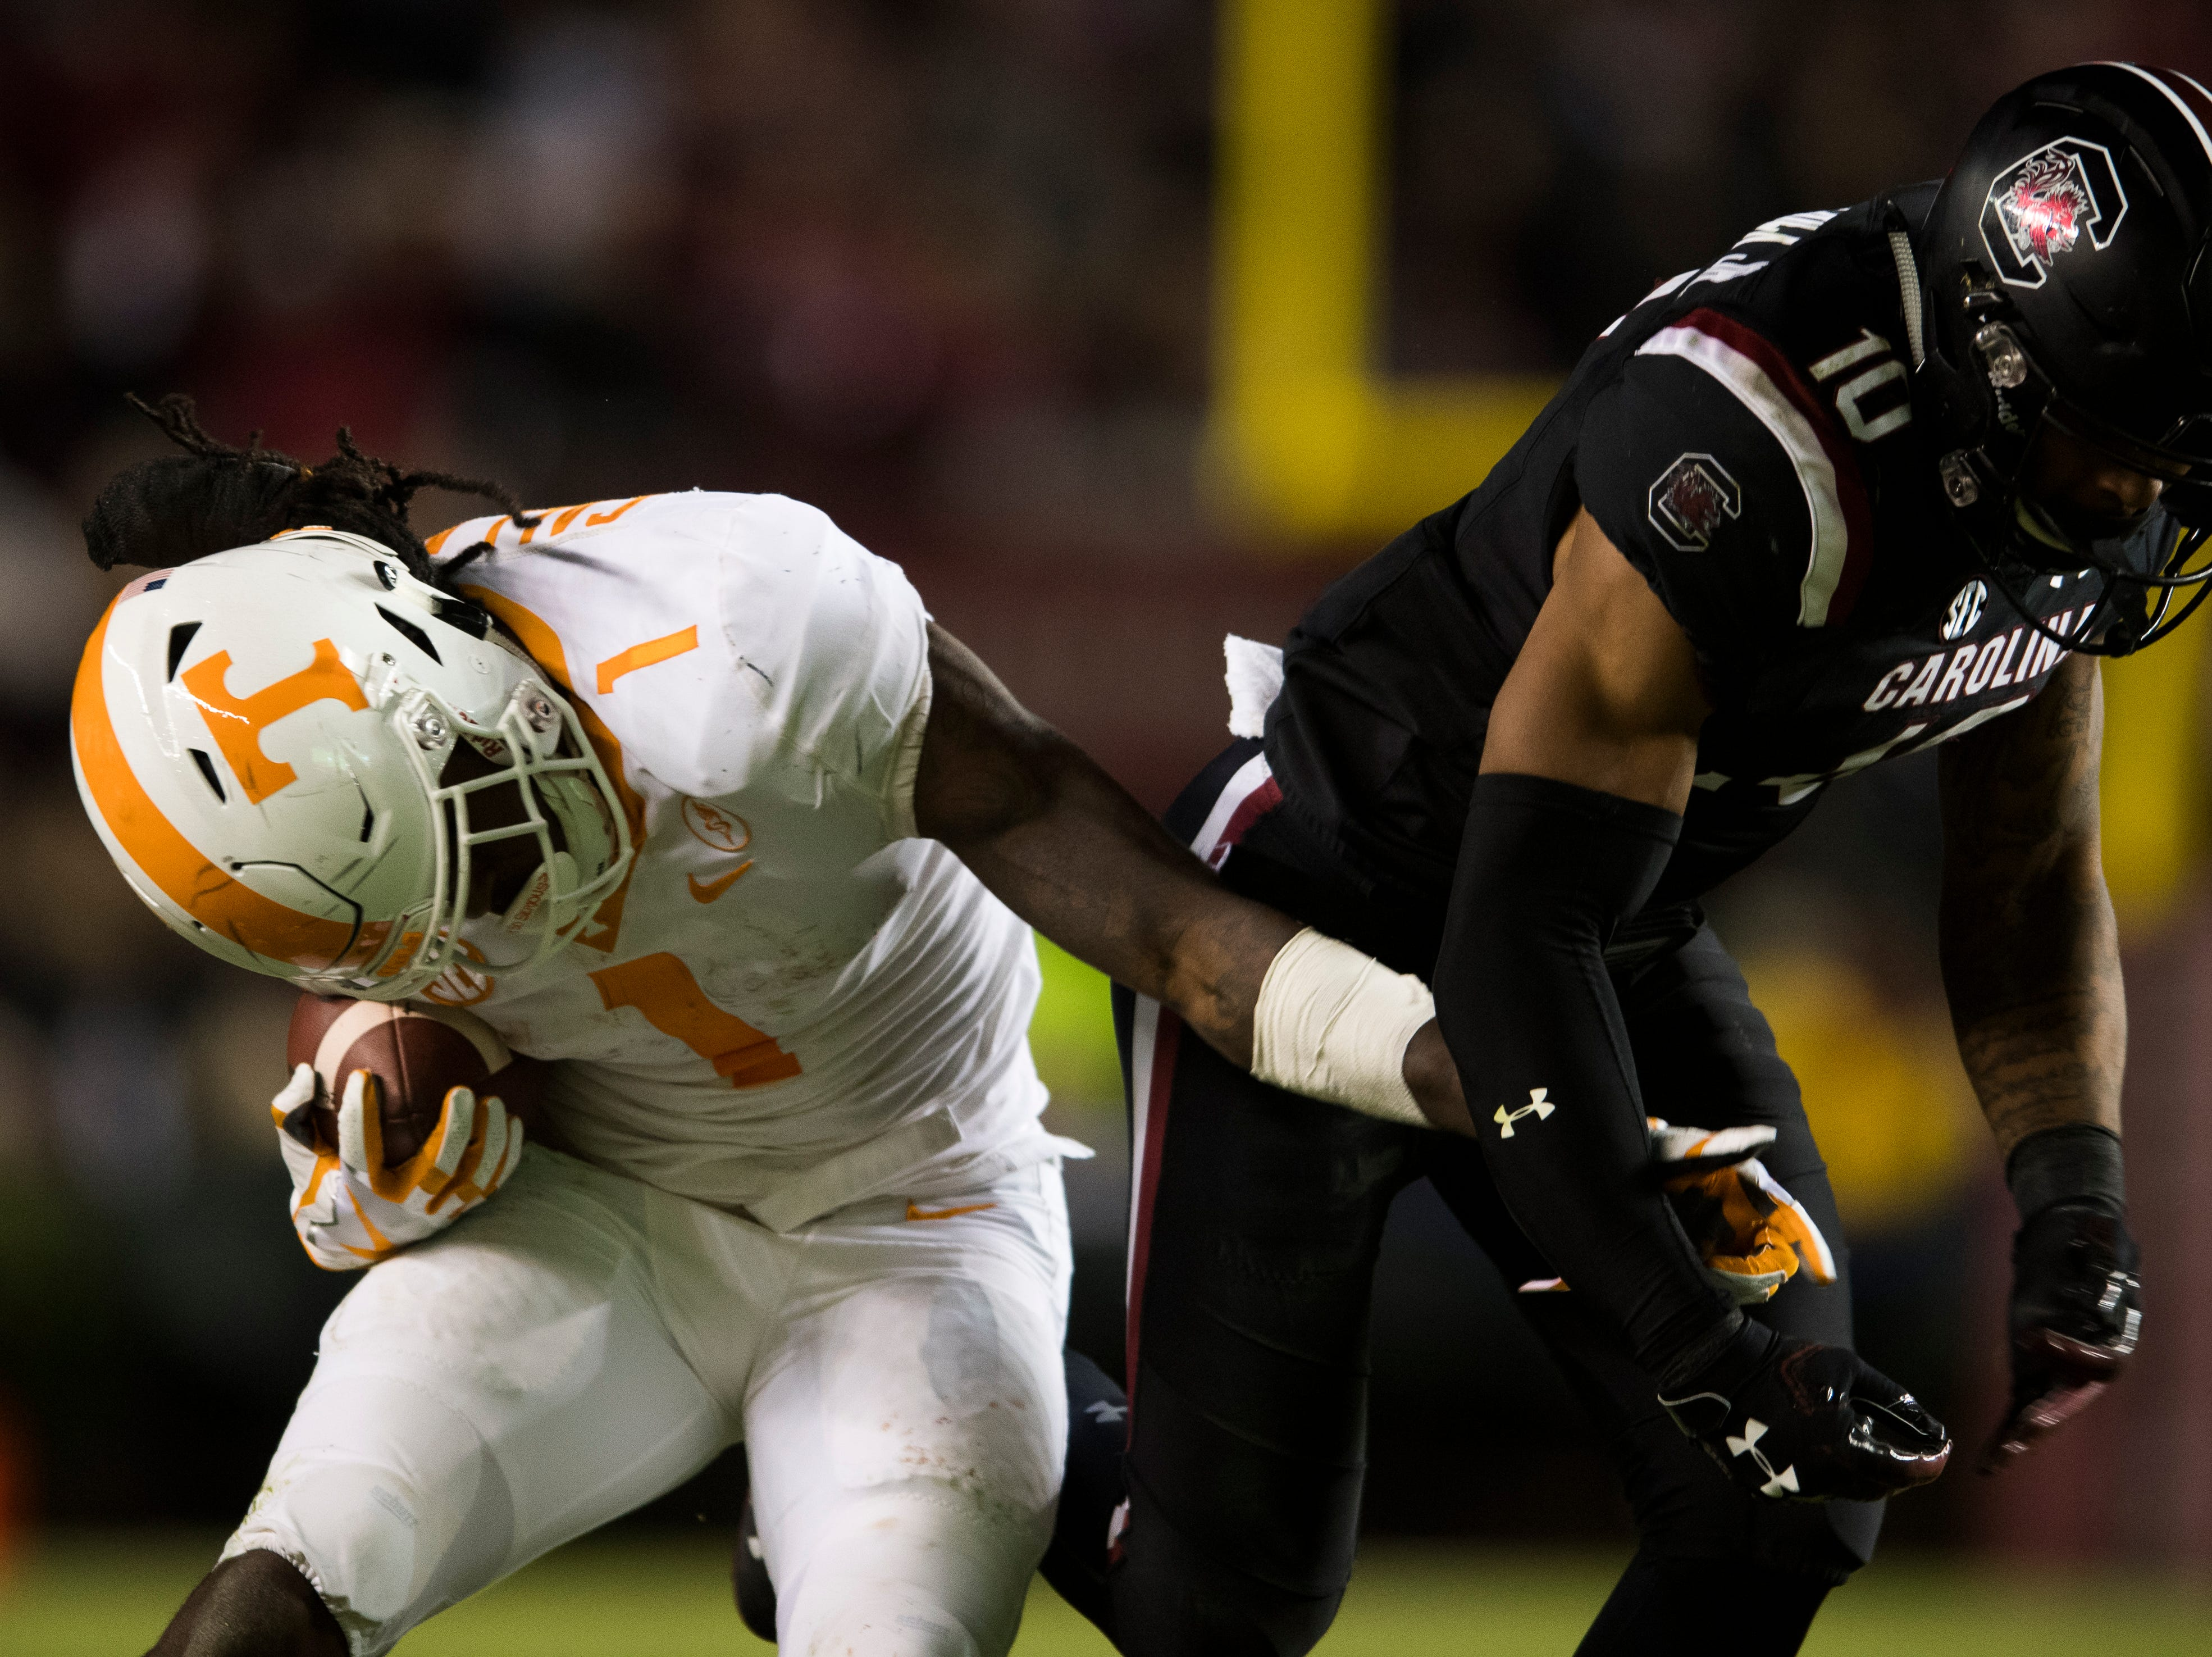 Tennessee wide receiver Marquez Callaway (1) tries to push away South Carolina defensive back R.J. Roderick (10) during a game between Tennessee and South Carolina at Williams-Brice Stadium in Columbia, South Carolina on Saturday, October 27, 2018.